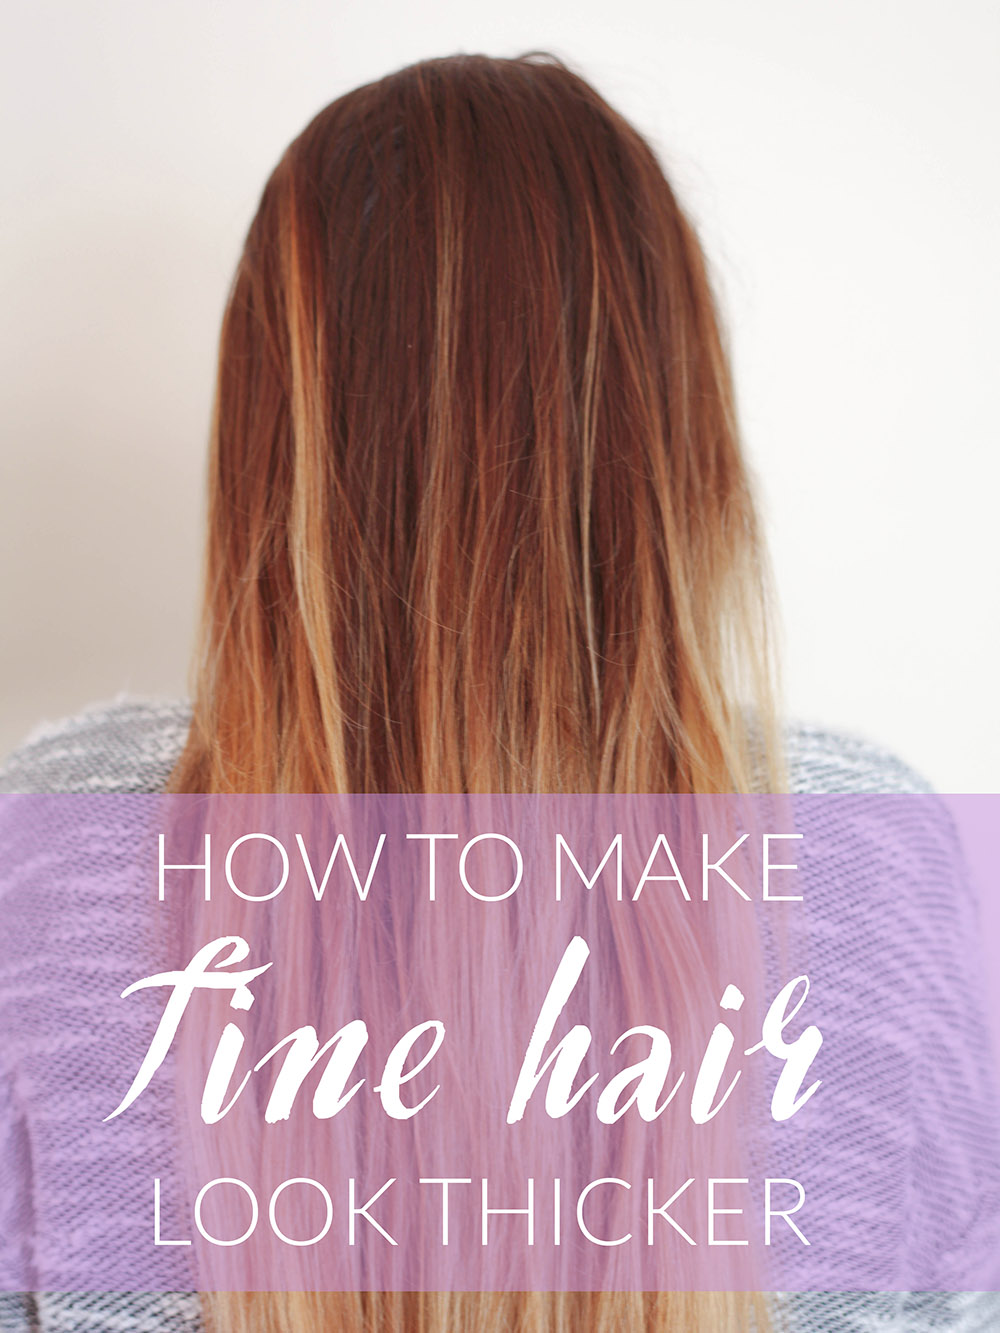 how to make fine hair look thicker - michelle phan – michelle phan